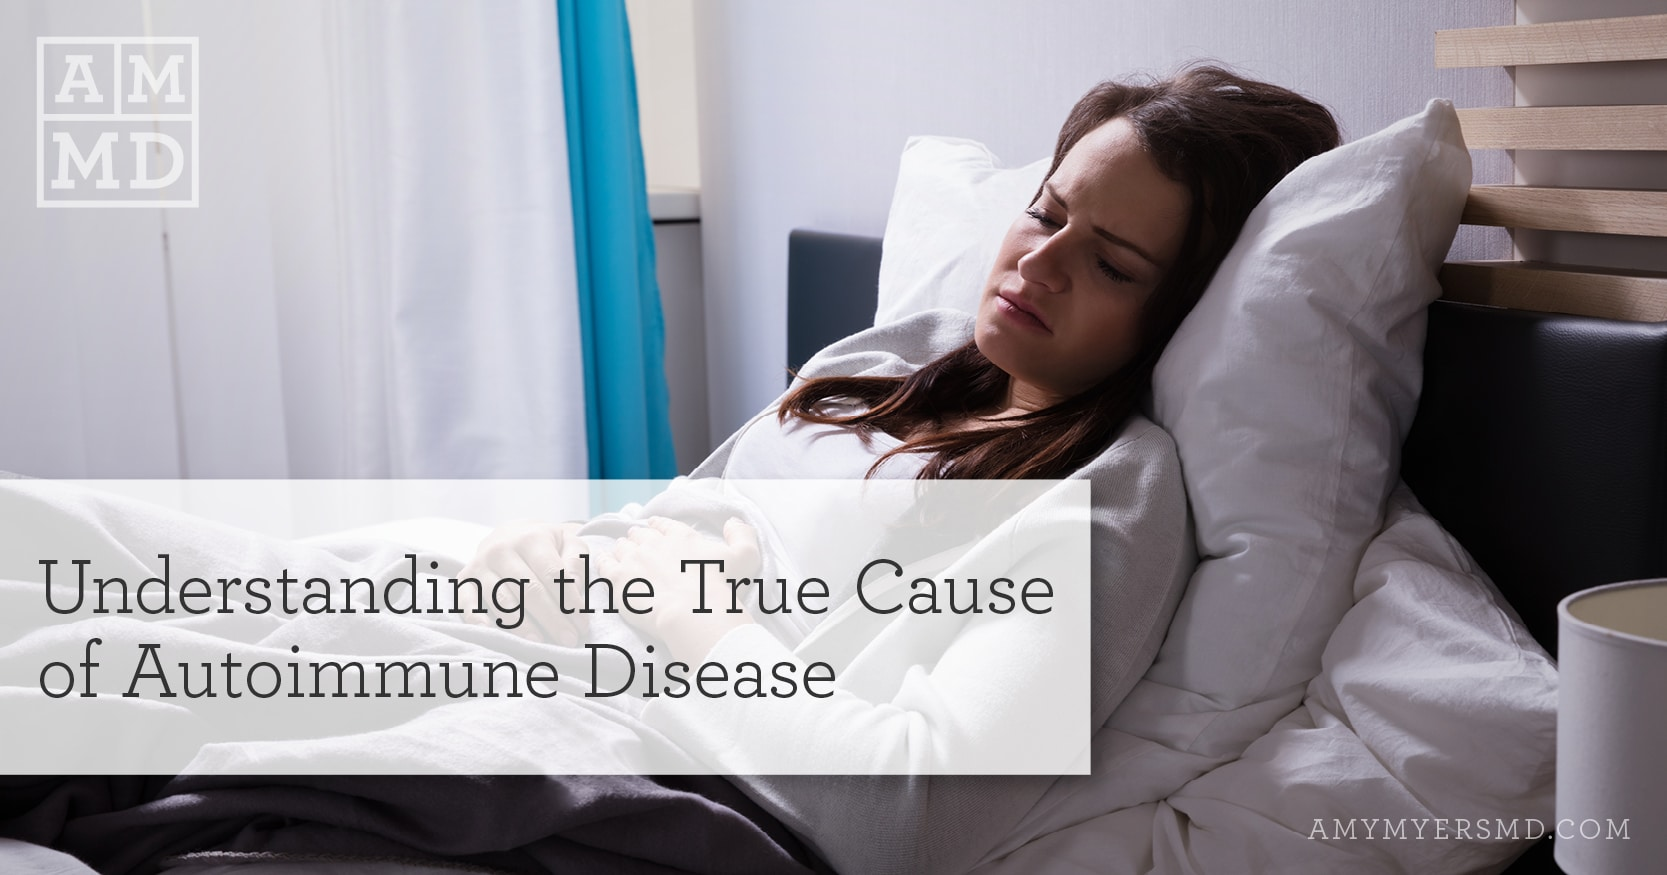 understanding-the-true-cause-of-autoimmune-disease